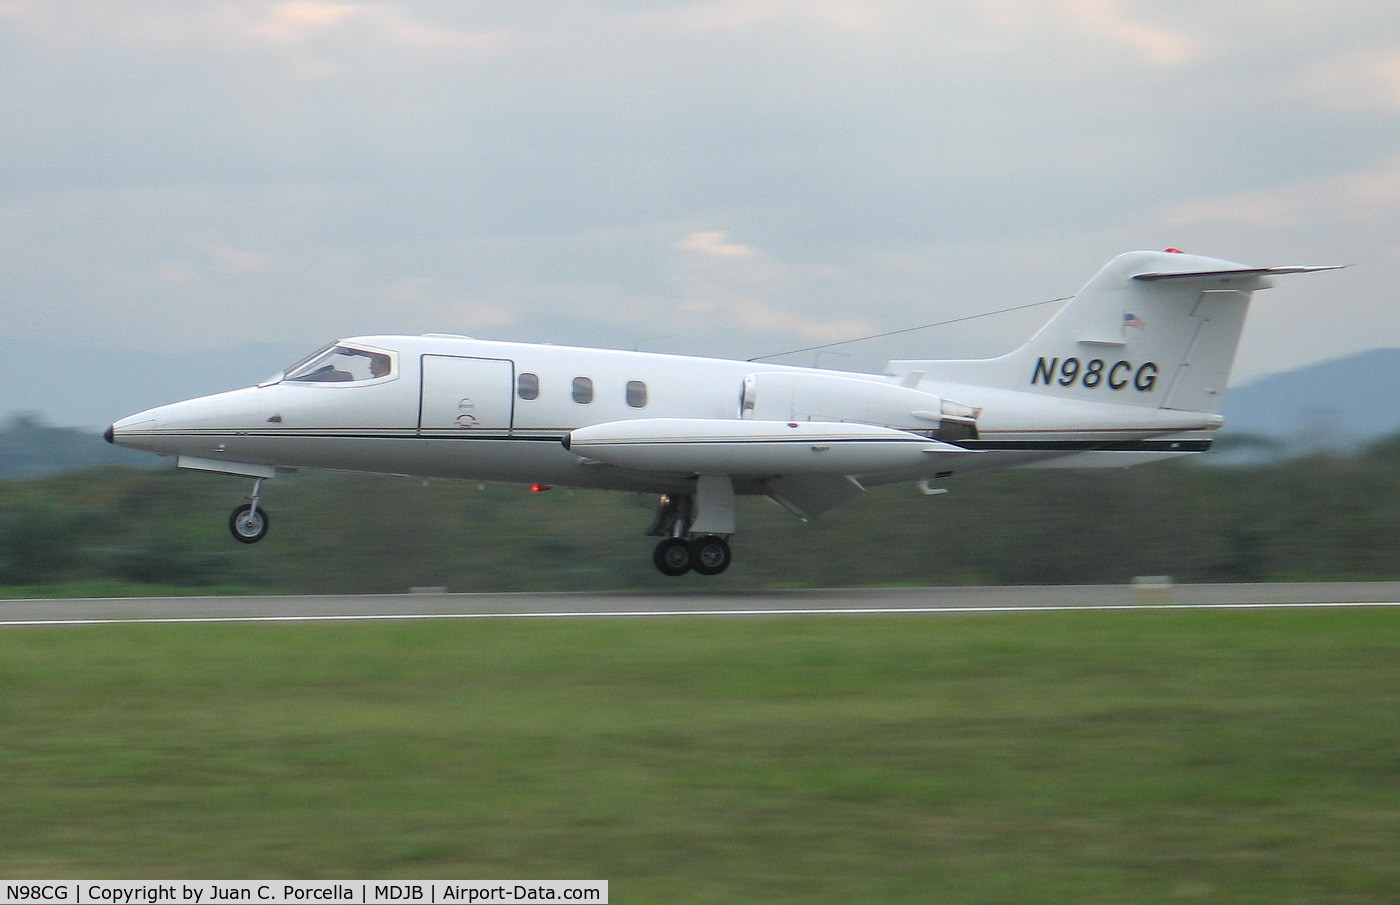 N98CG, 1976 Learjet 24D C/N 289, Taking off